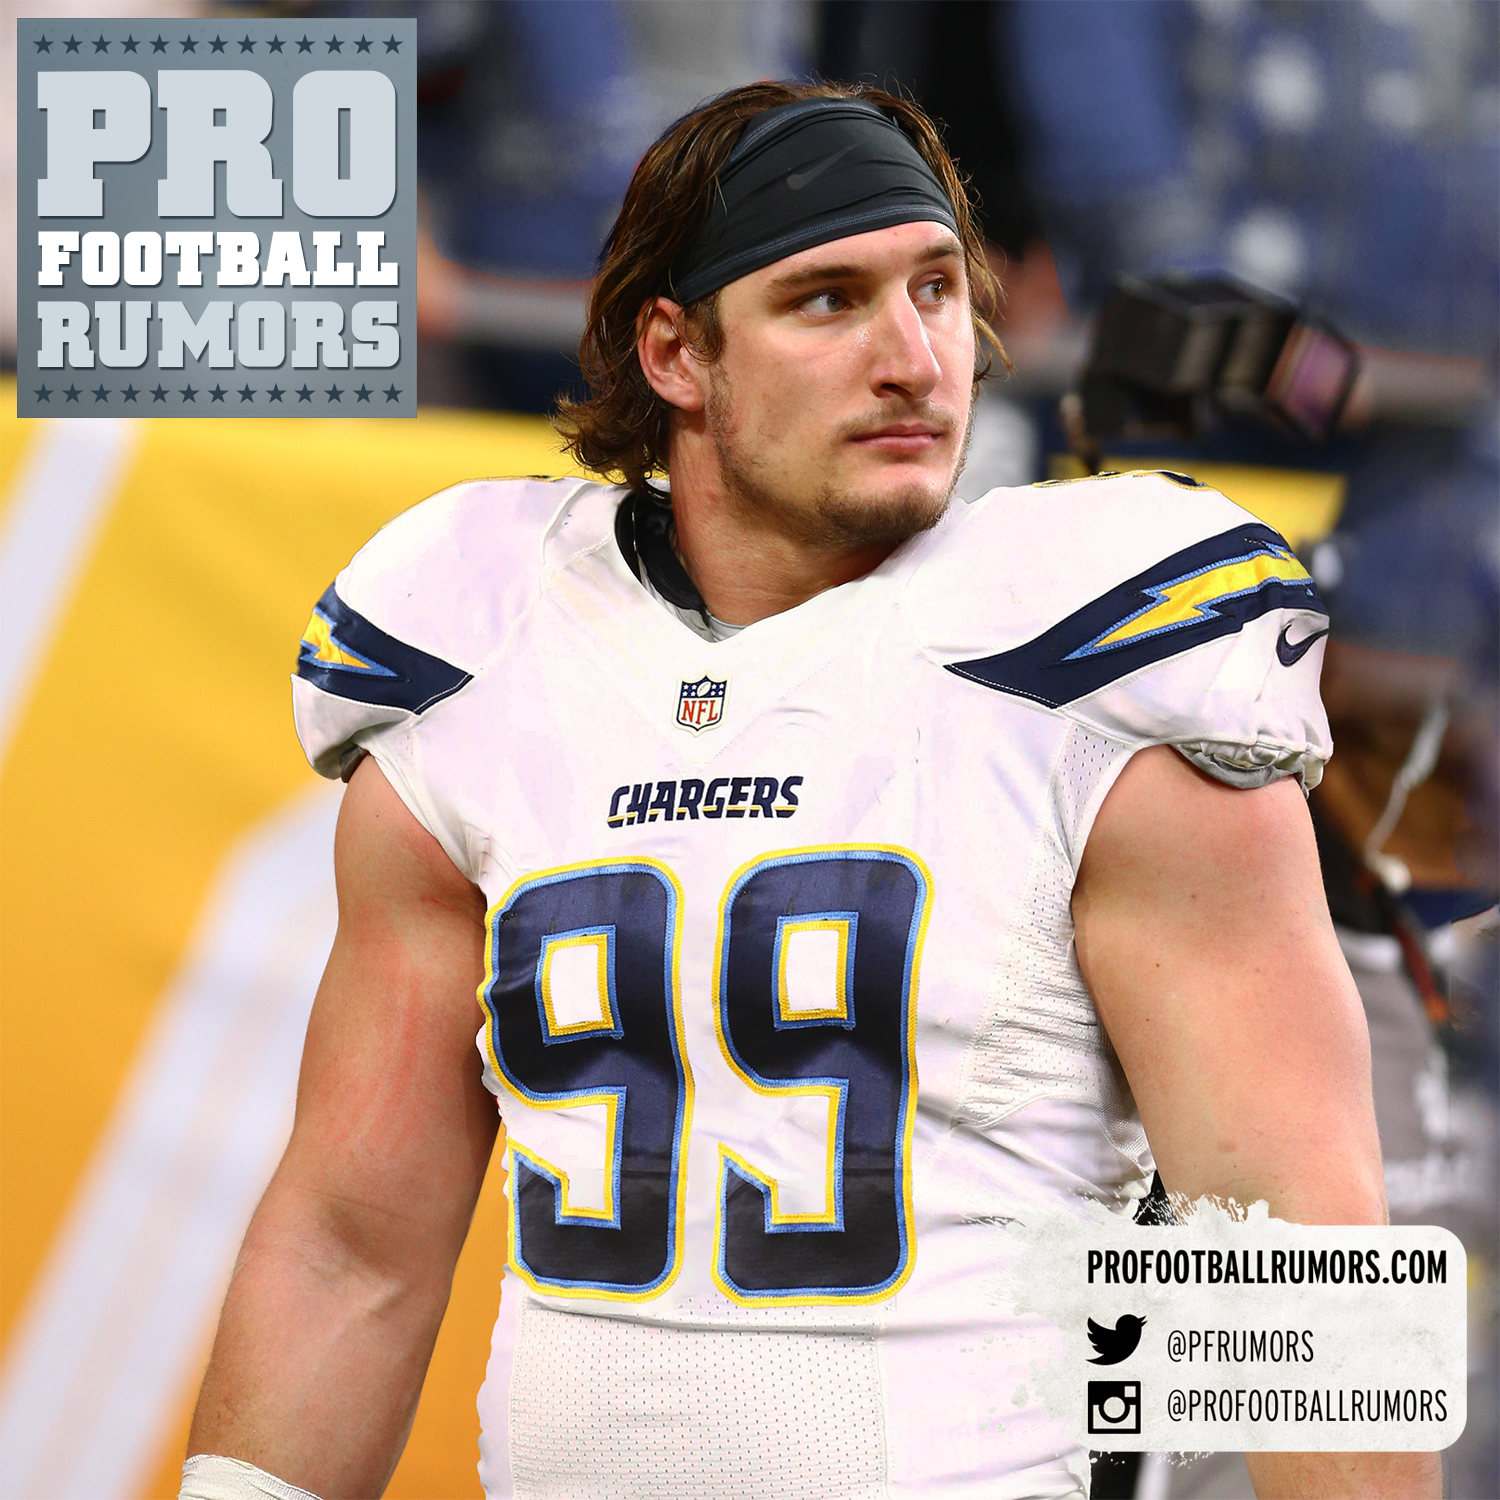 Details On Joey Bosa Chargers Contract Dispute